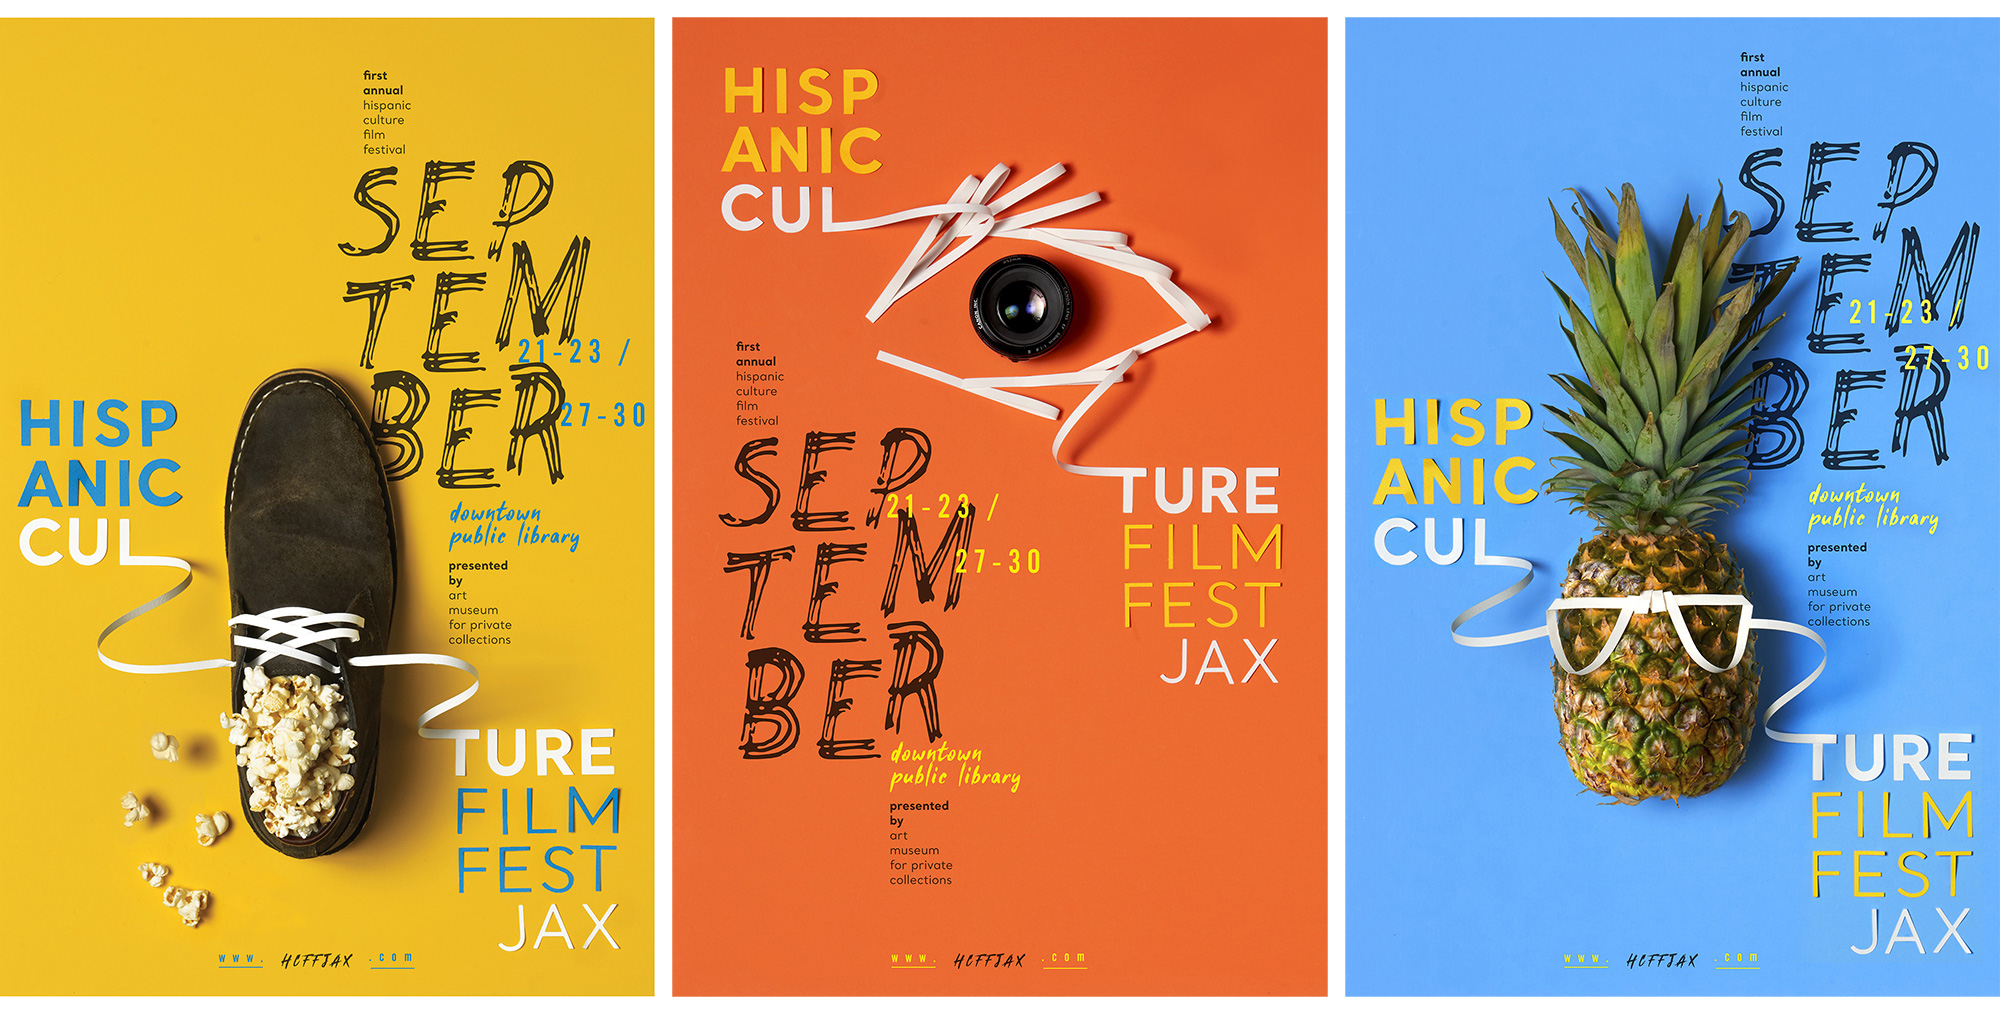 Hispanic Culture Film Fest Jax posters that show a show filled with popcorn, and eye made with a camera lens, and a pineapple with eyeglasses.